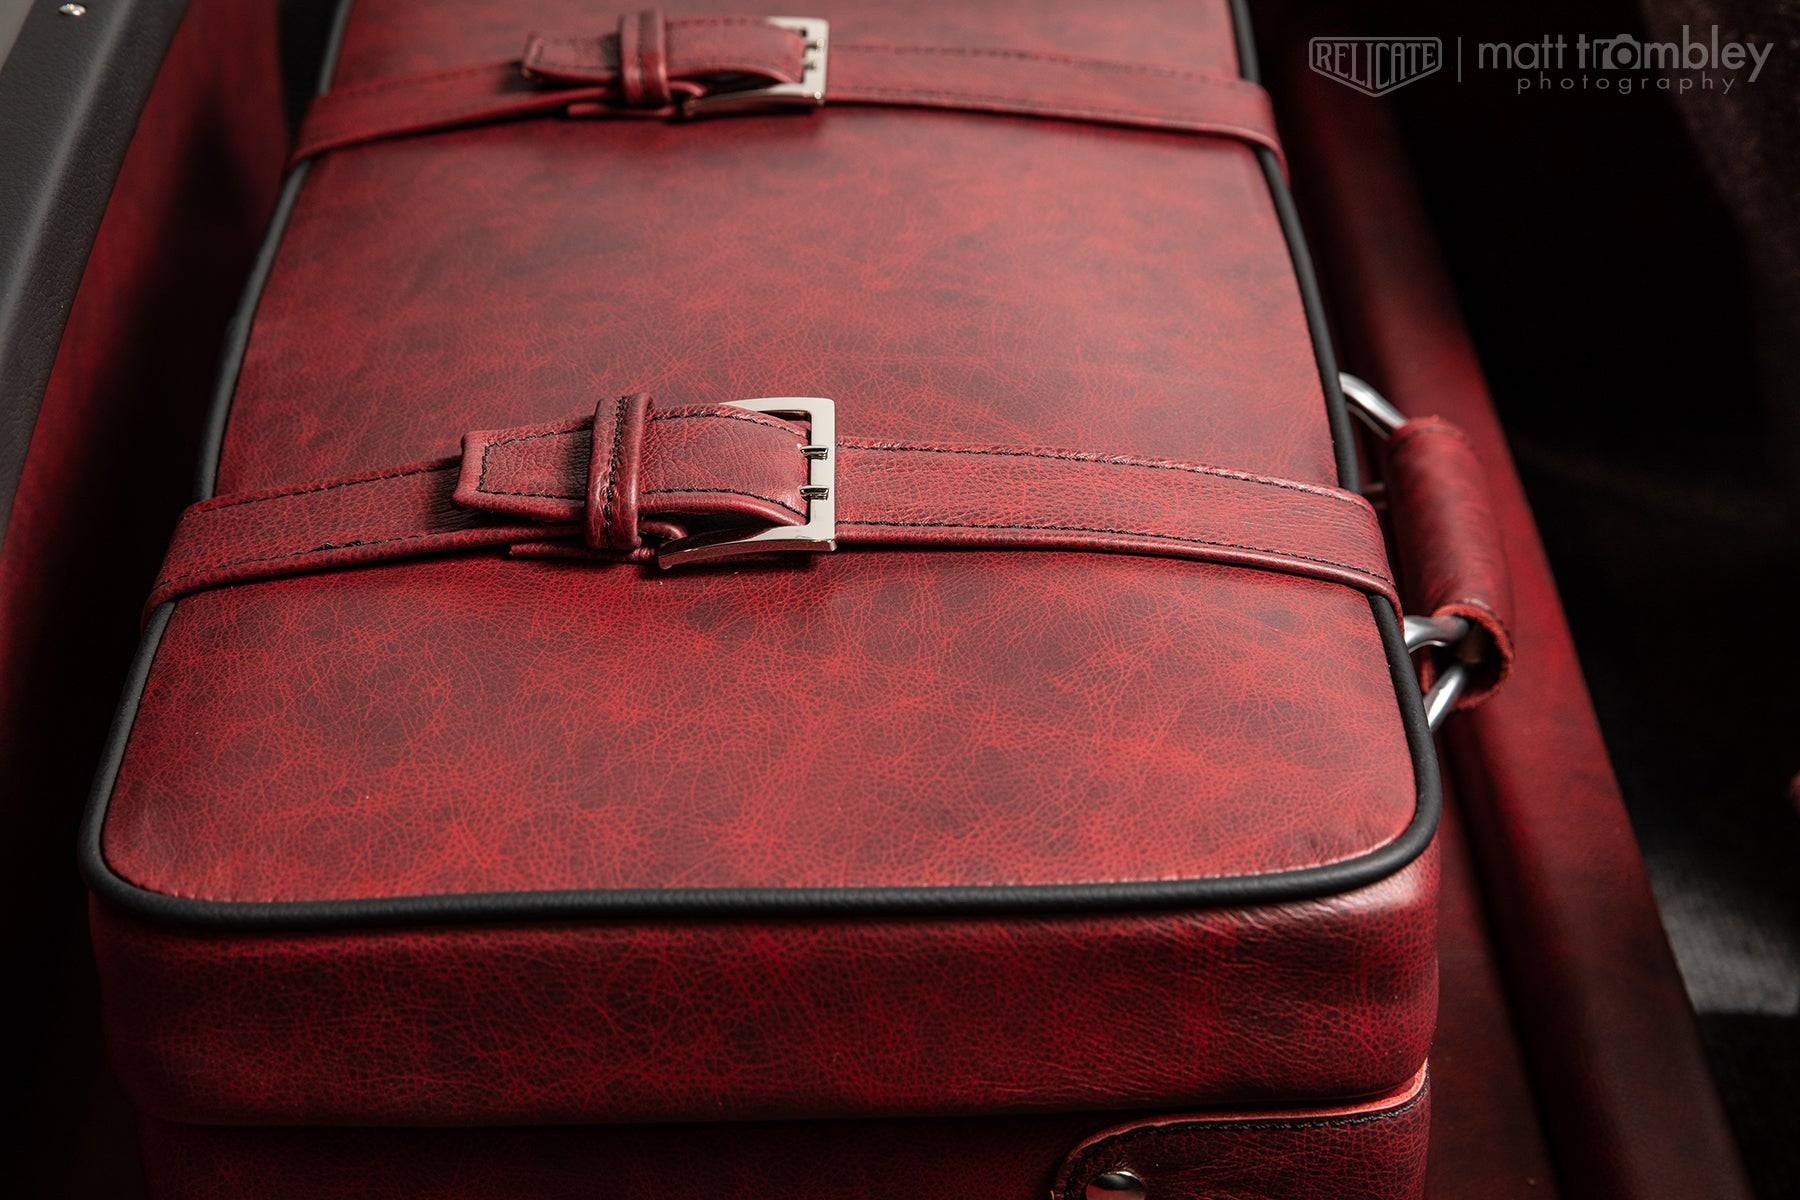 1966 Datsun Fairlady Roadster with Moroccan Distressed Leather Interior luggage suitcase